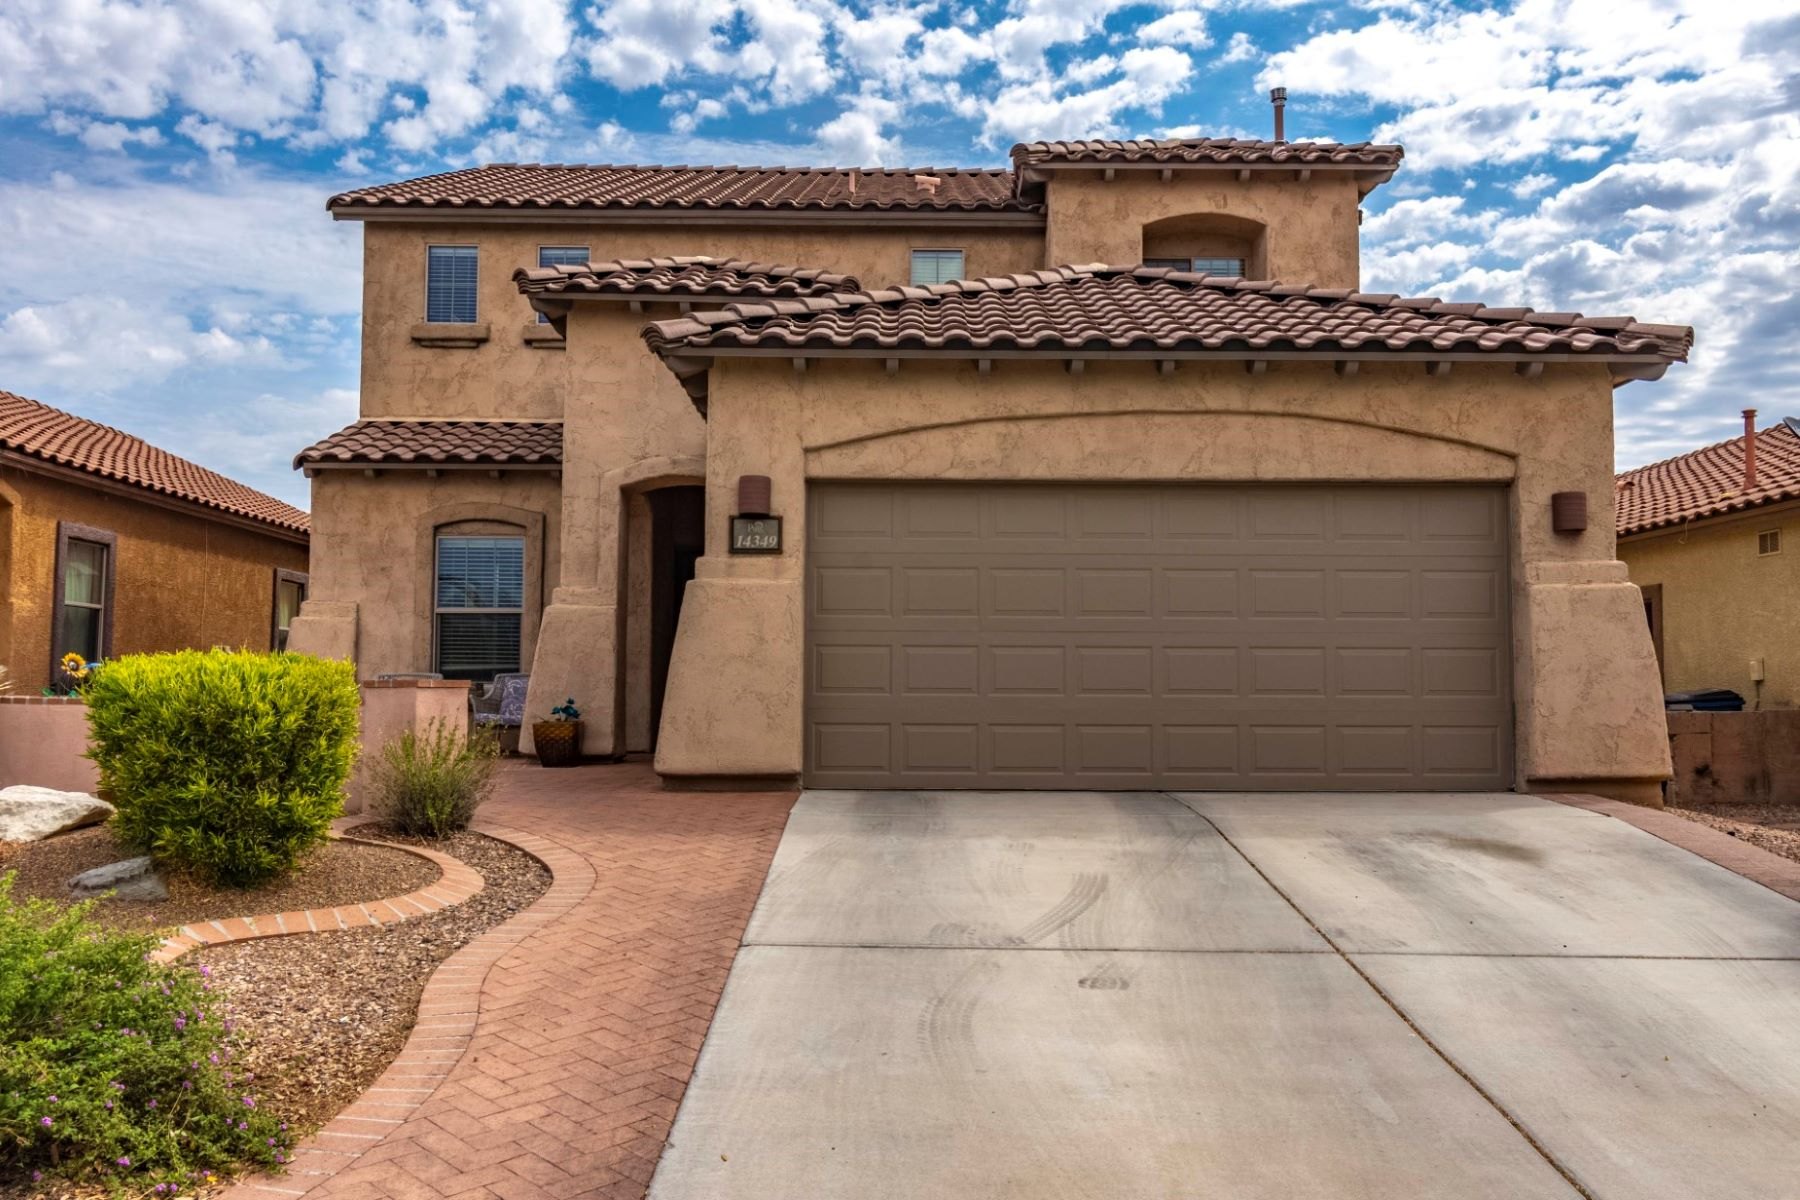 Single Family Homes por un Venta en Gorgeous Home in the Heart of Rancho Sahuarita 14349 W Camino El Foso Sahuarita, Arizona 85629 Estados Unidos